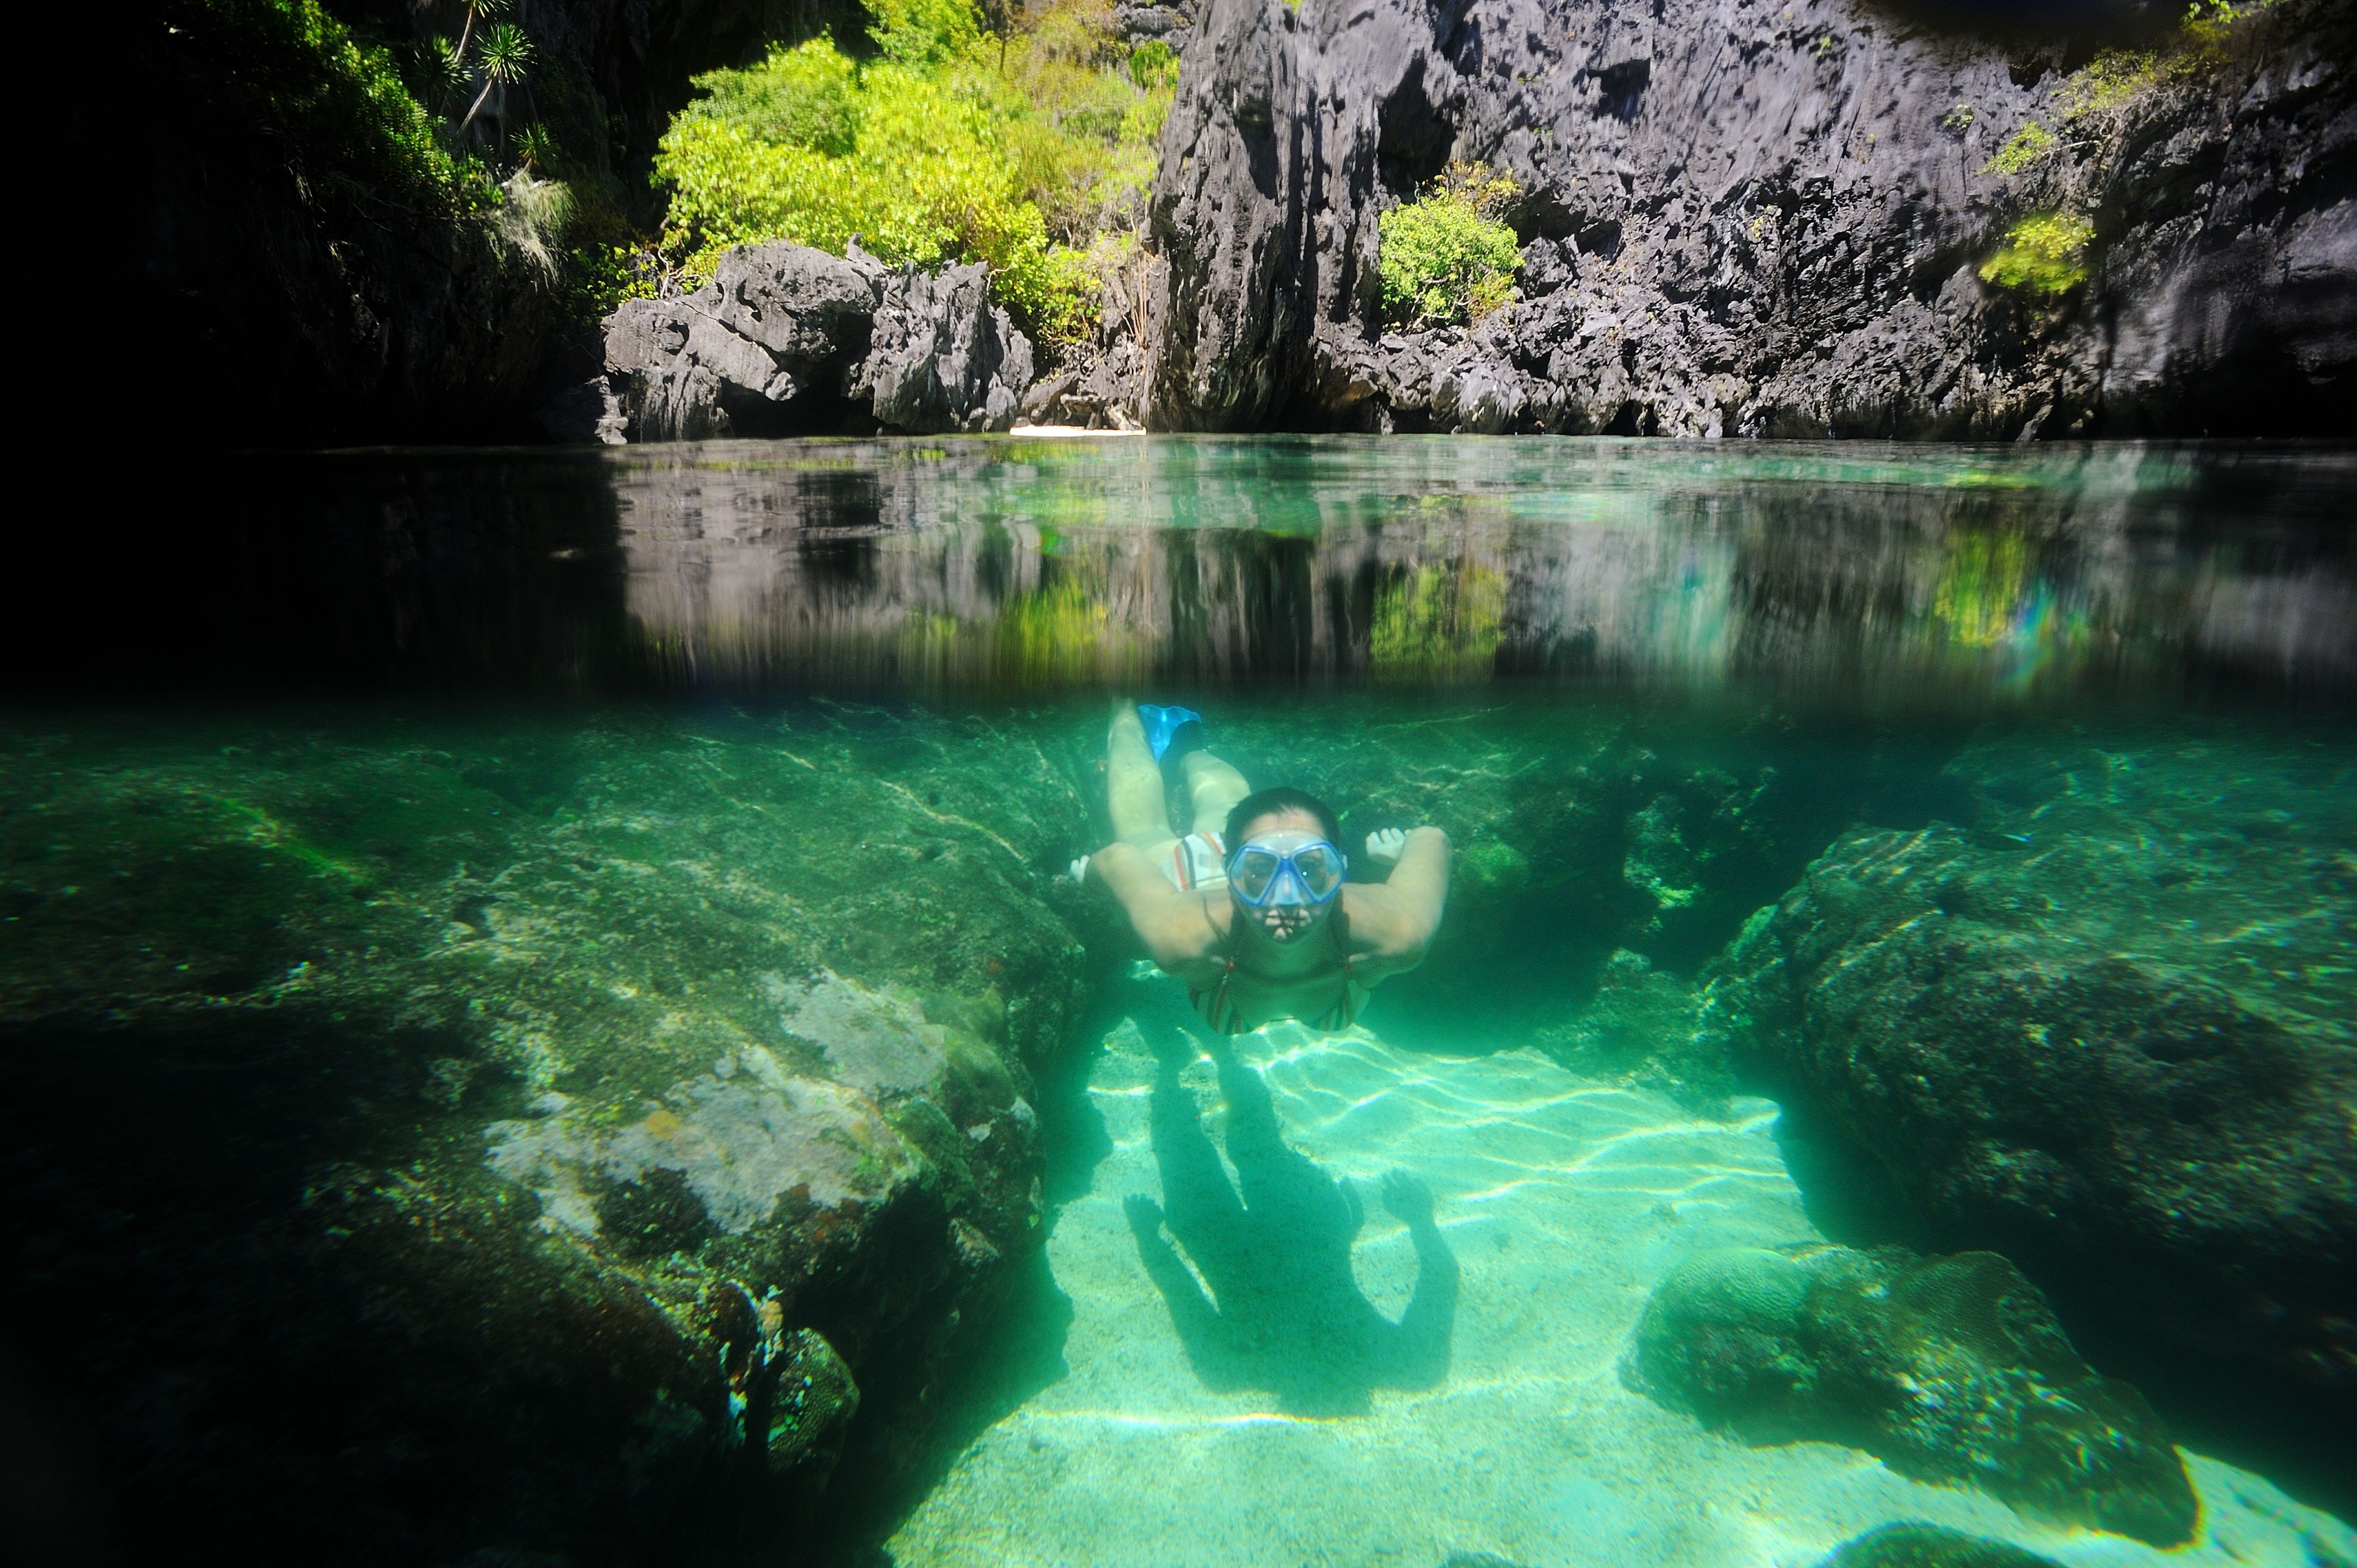 Cave Diving In The Paradise! The Philippines, Palawan